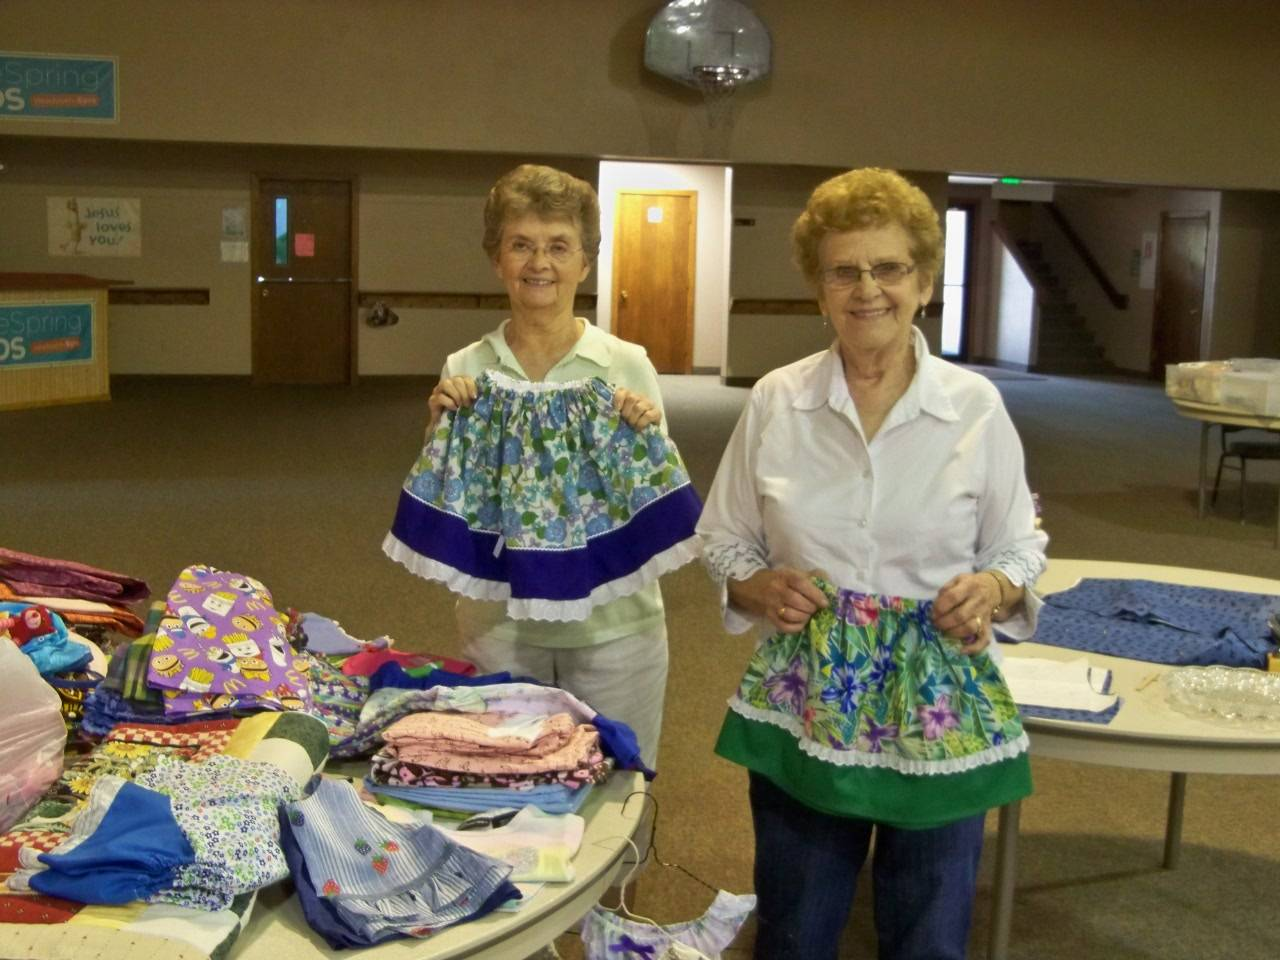 Ladies having fun with skirts and ruffles